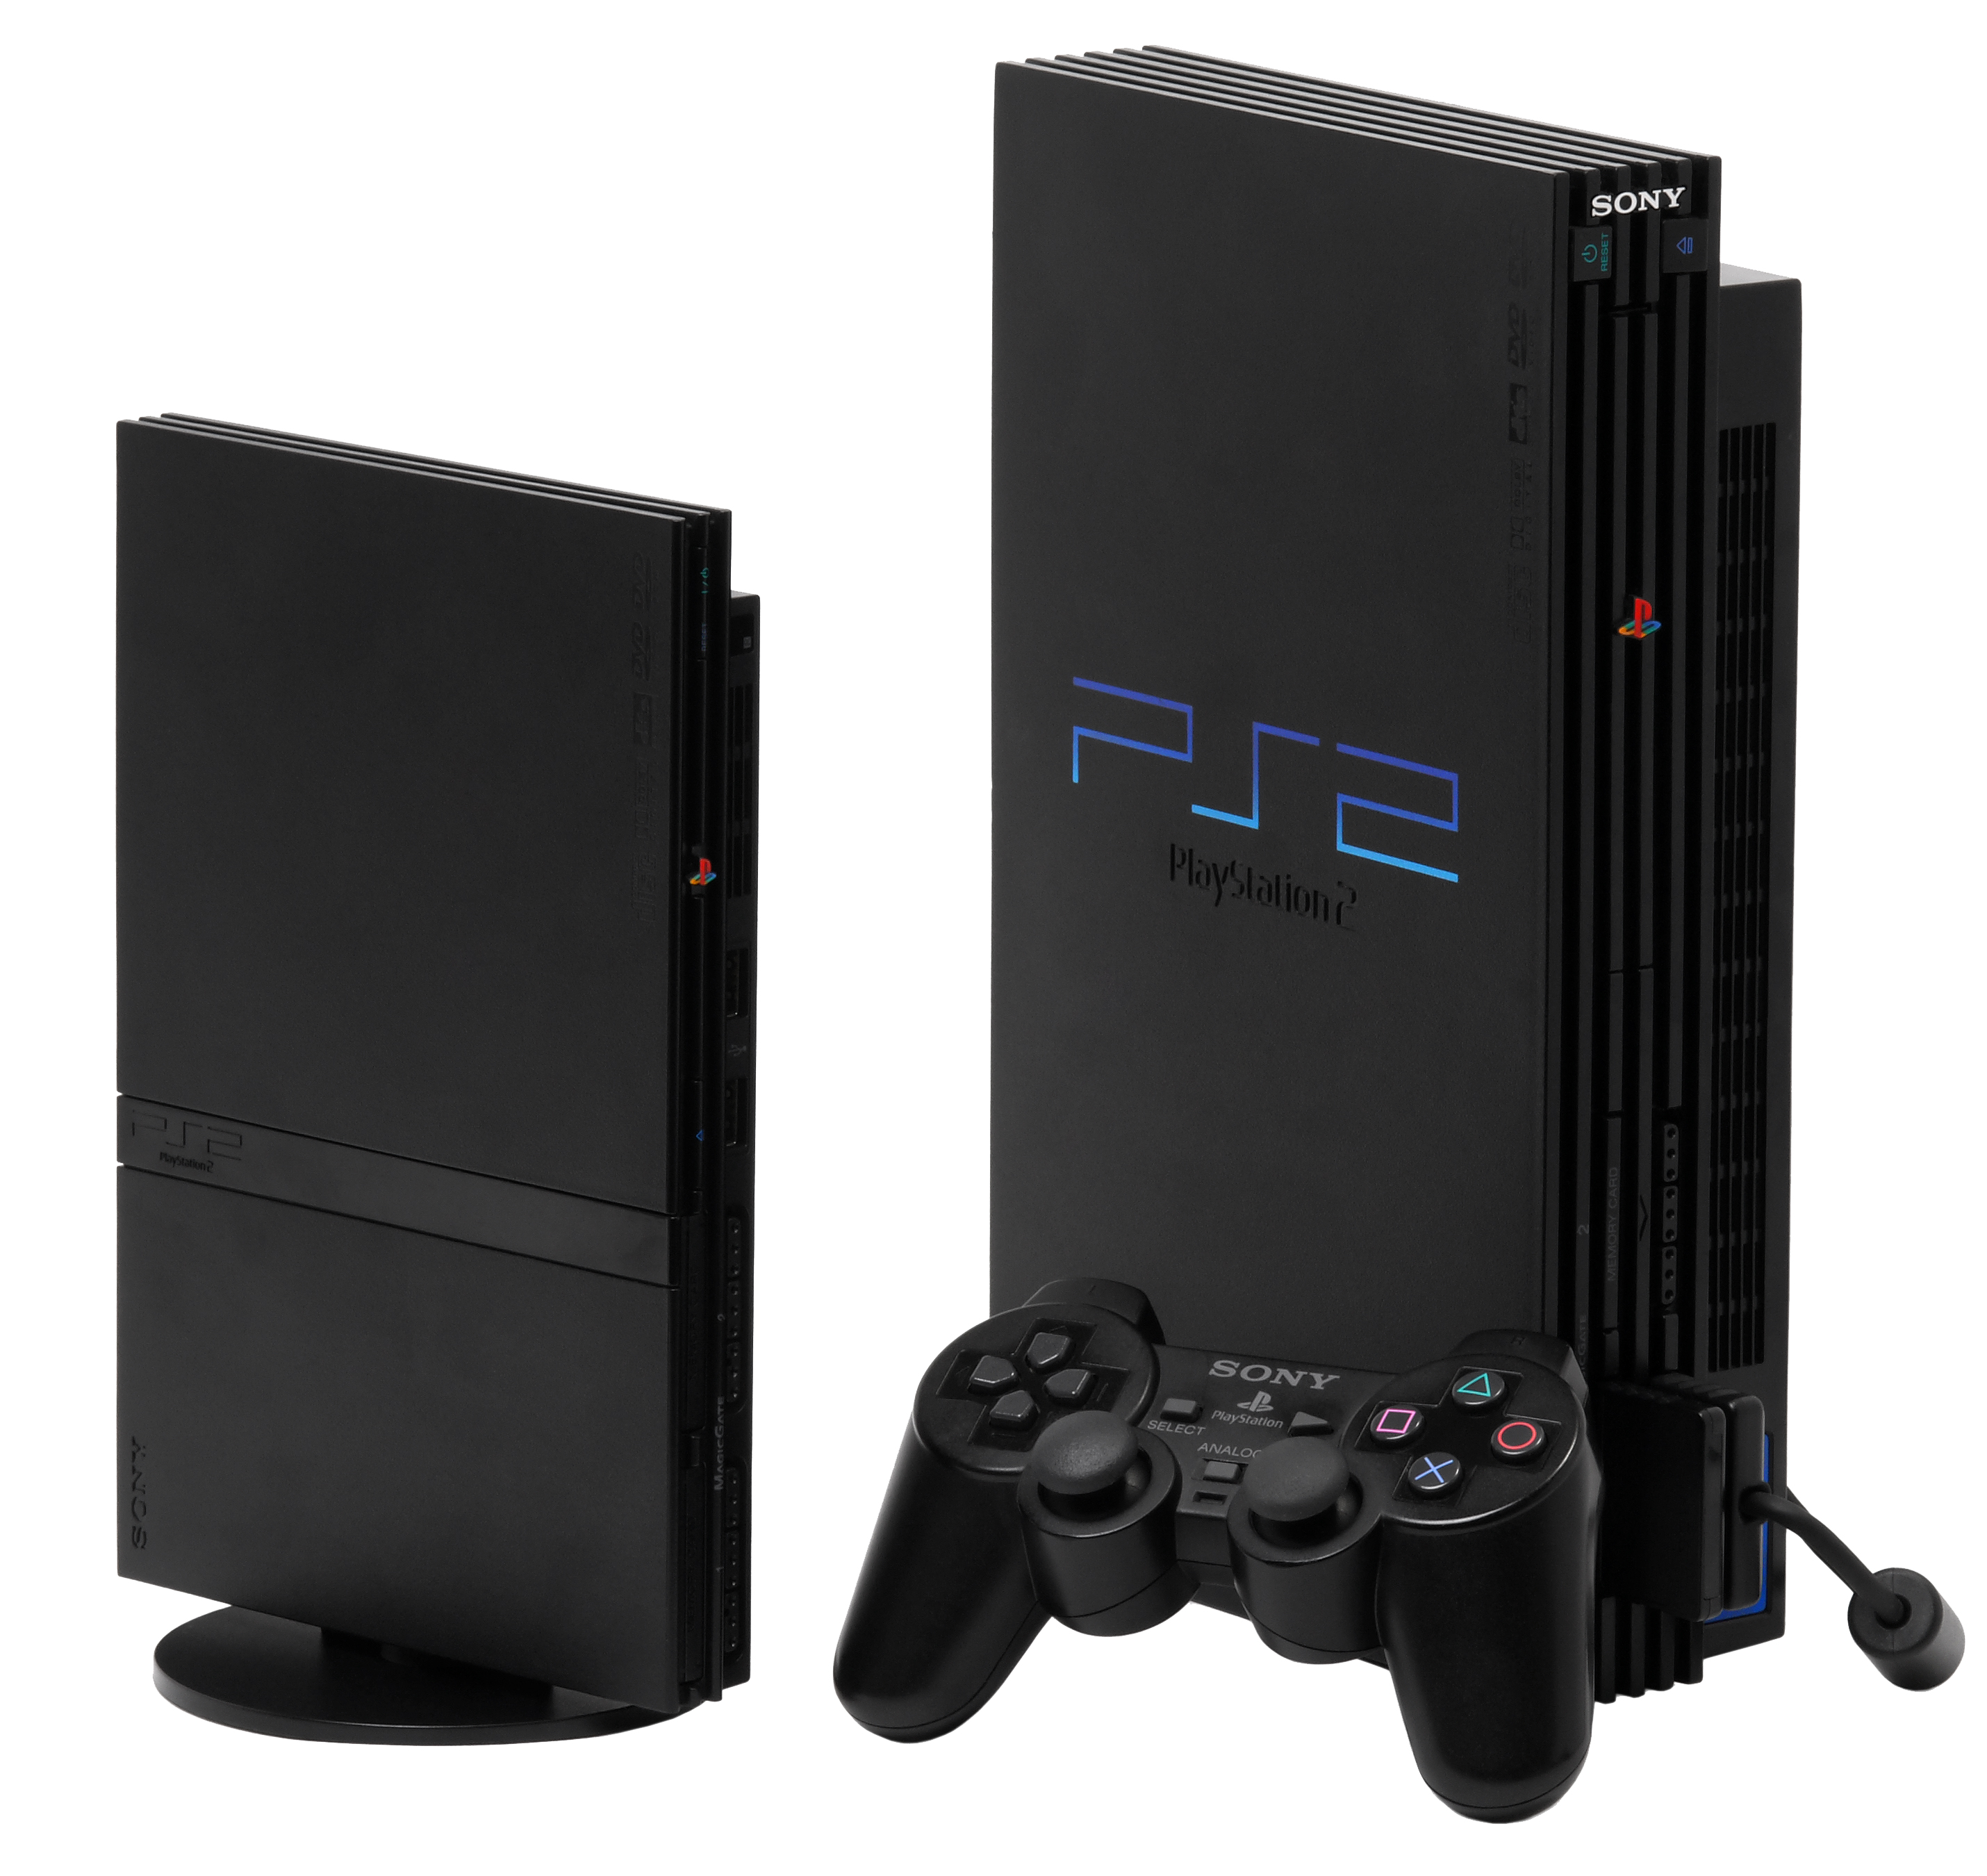 File:Playstation 2.jpeg